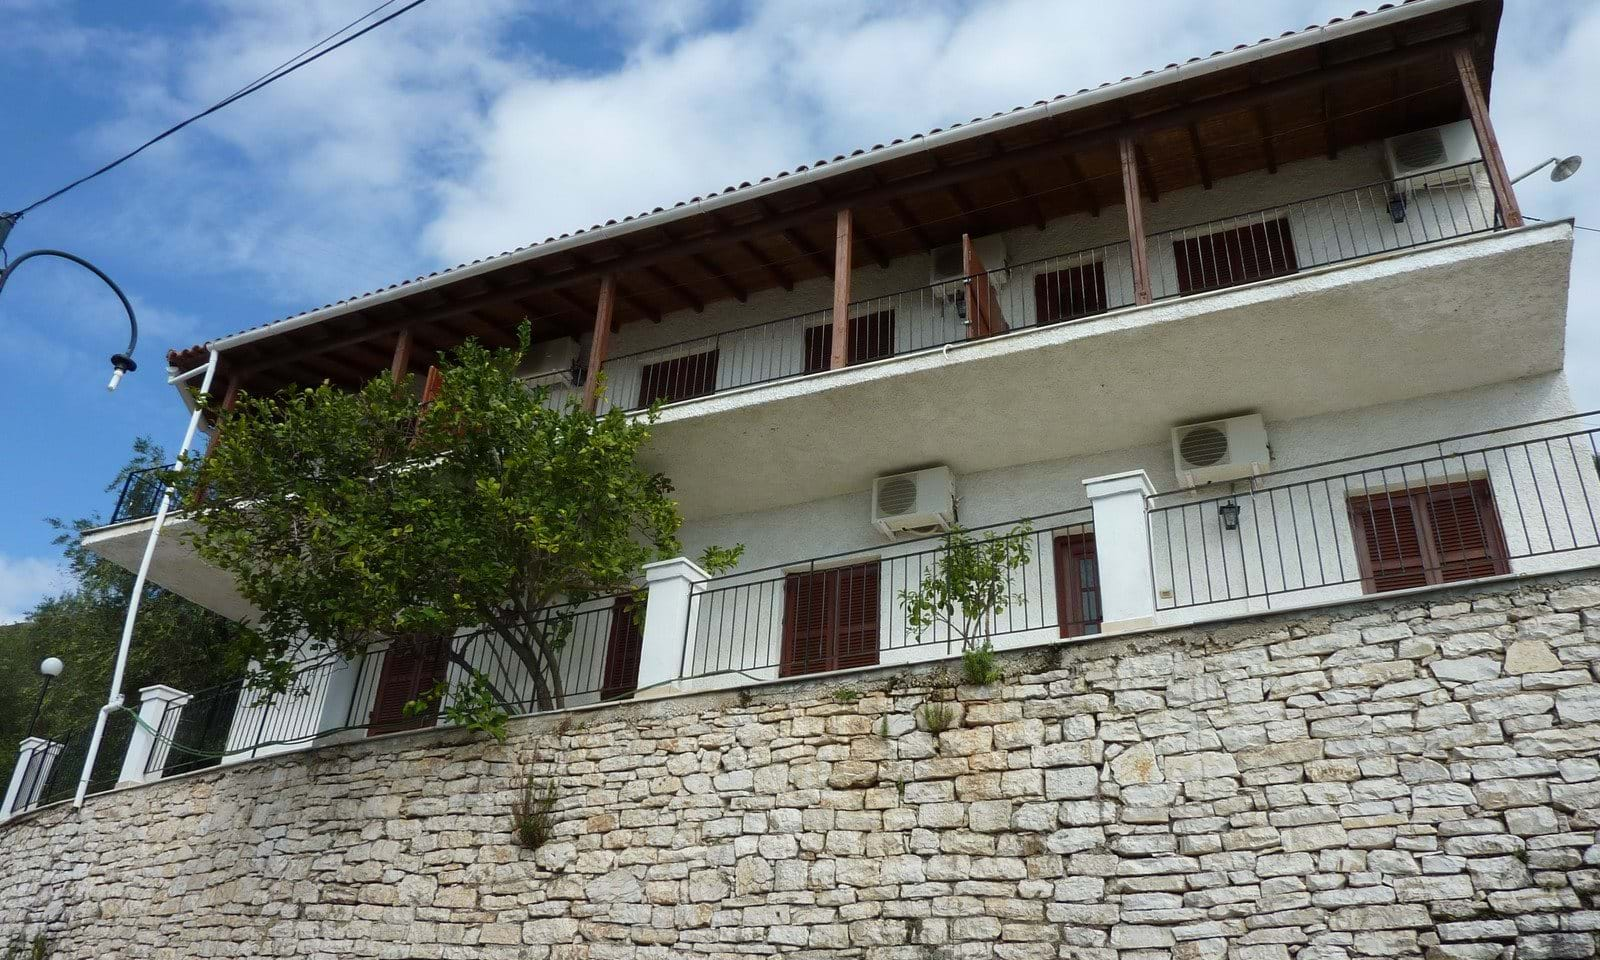 Commercial property Corfu